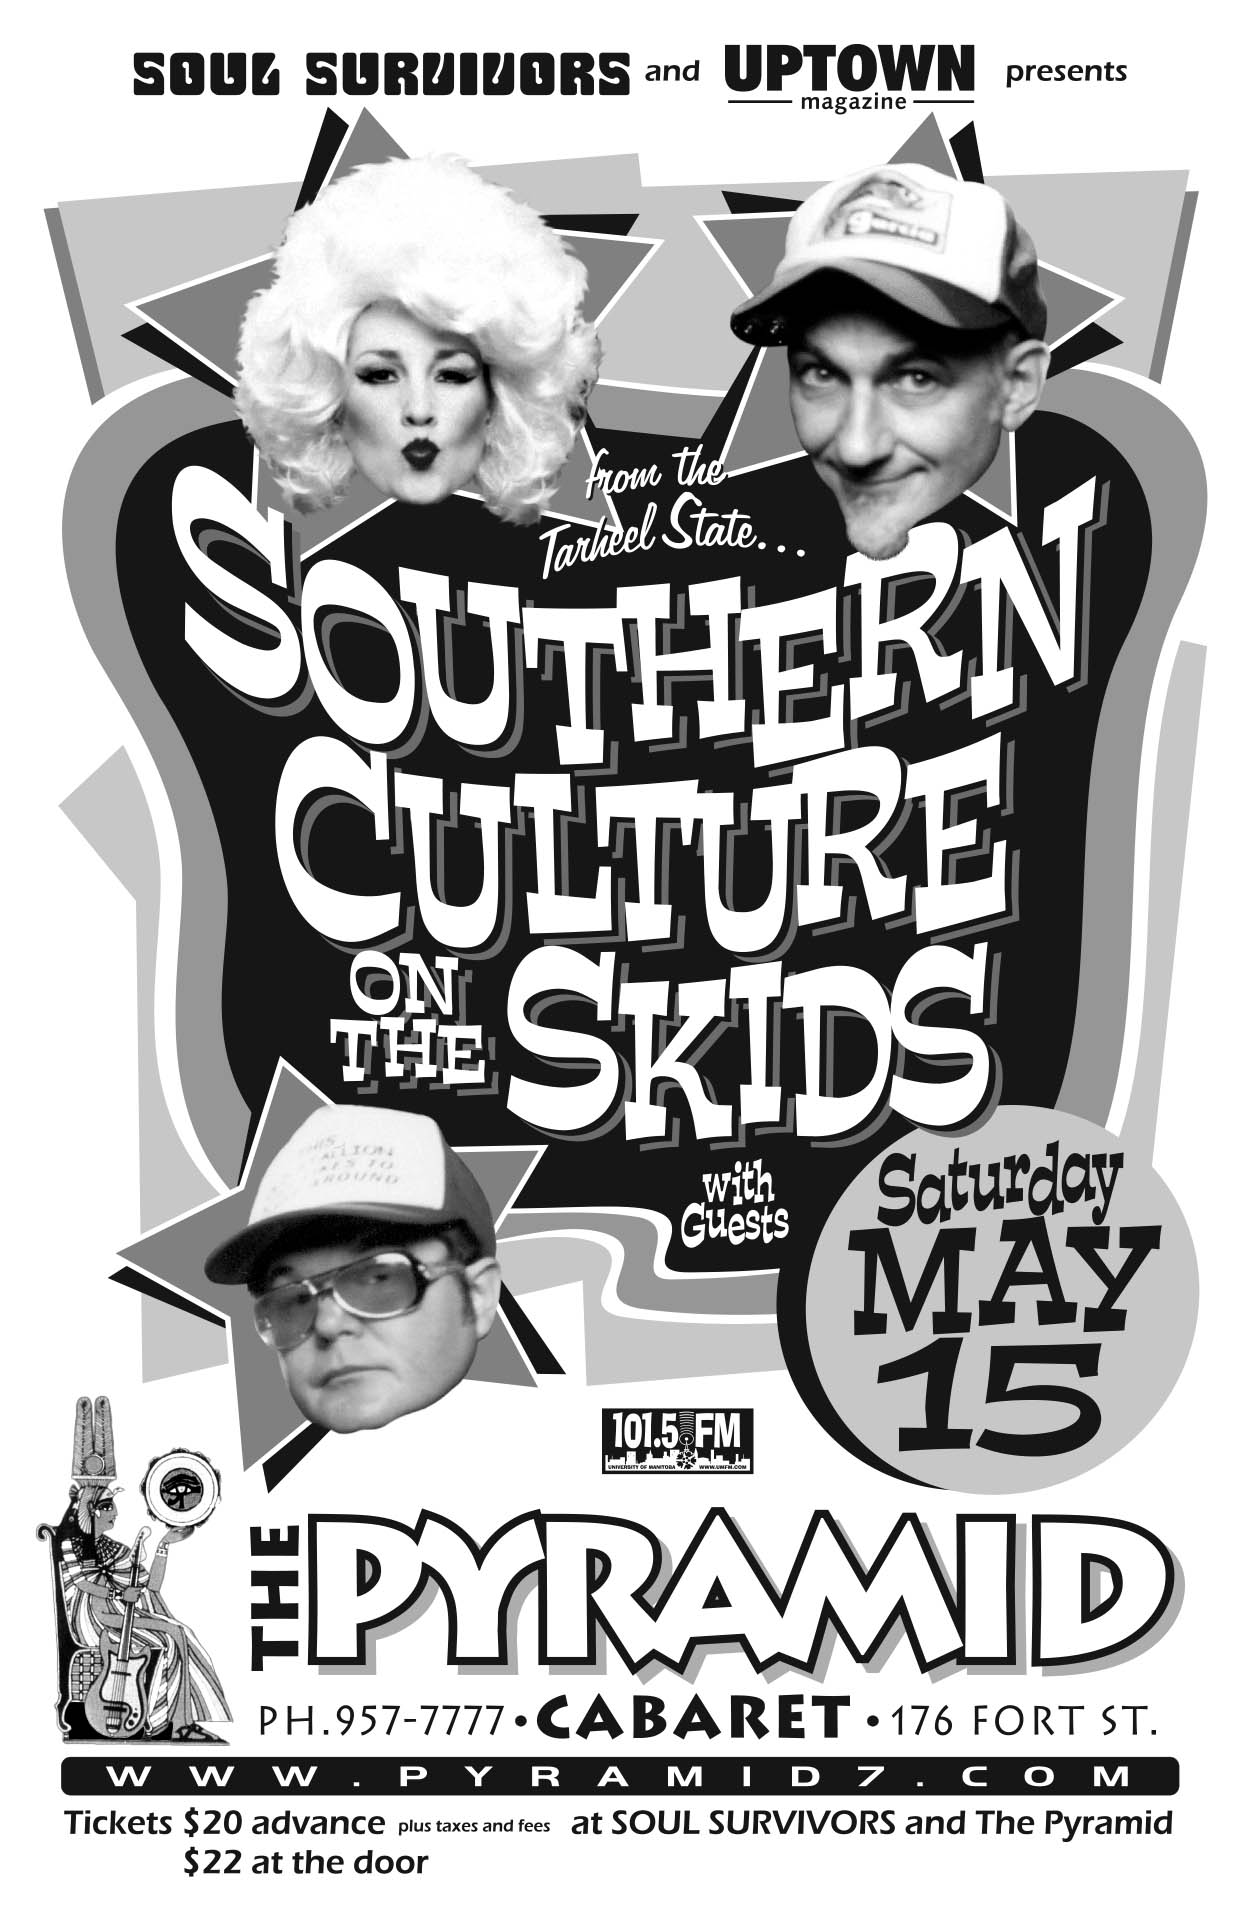 Southern Culture on the Skids – 2004